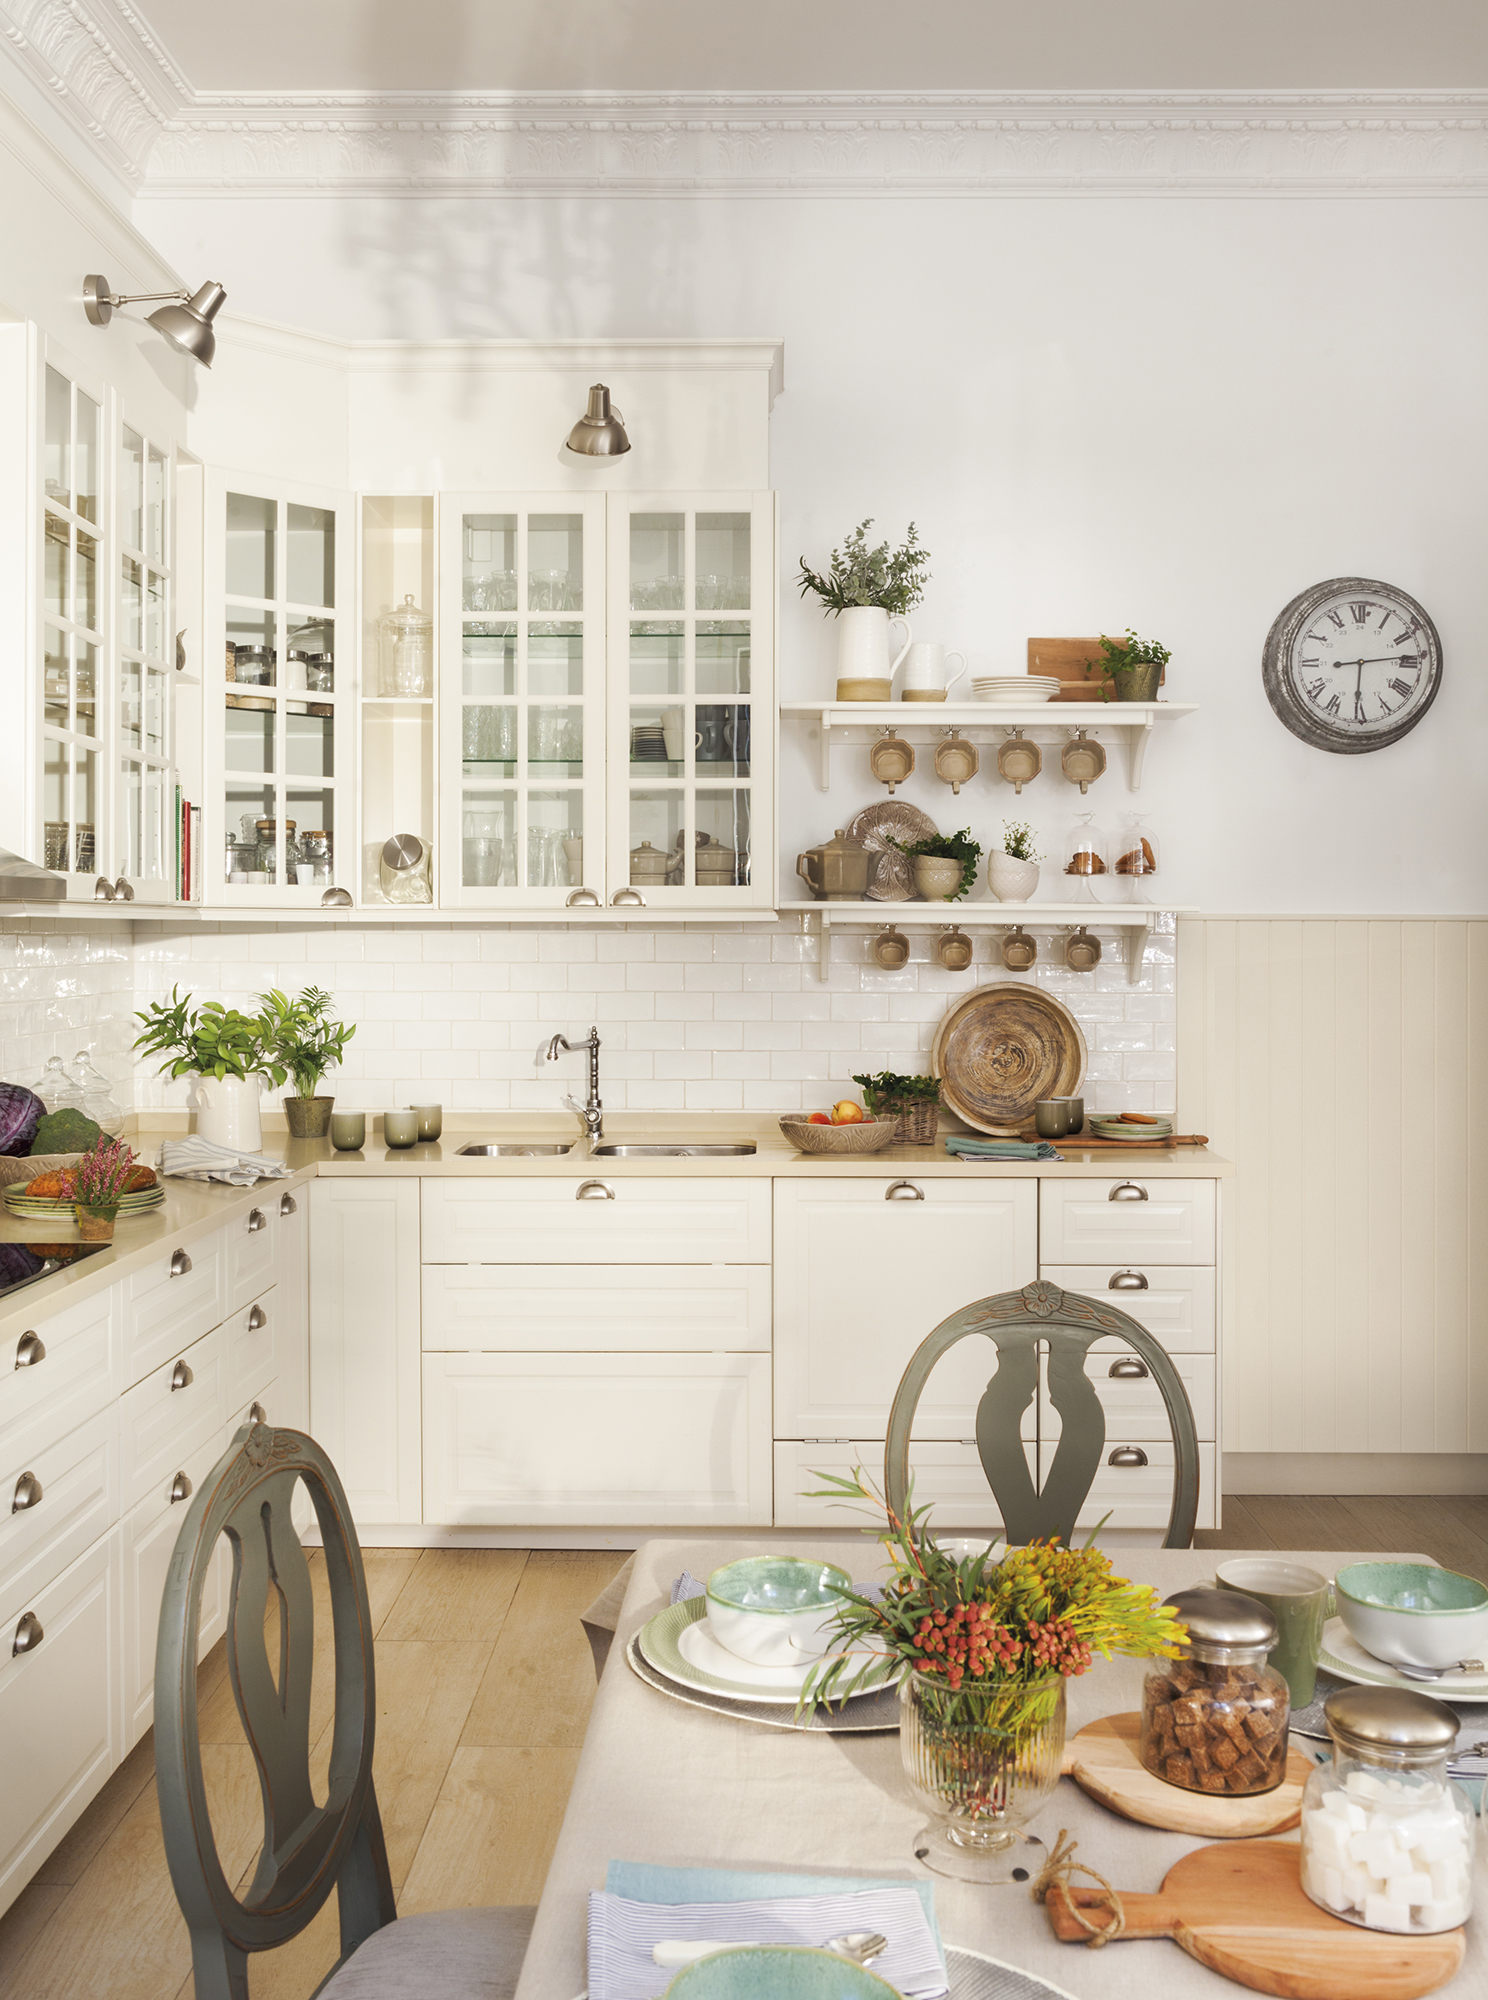 MG 6397.  Cocina en blanco con office MG 6397